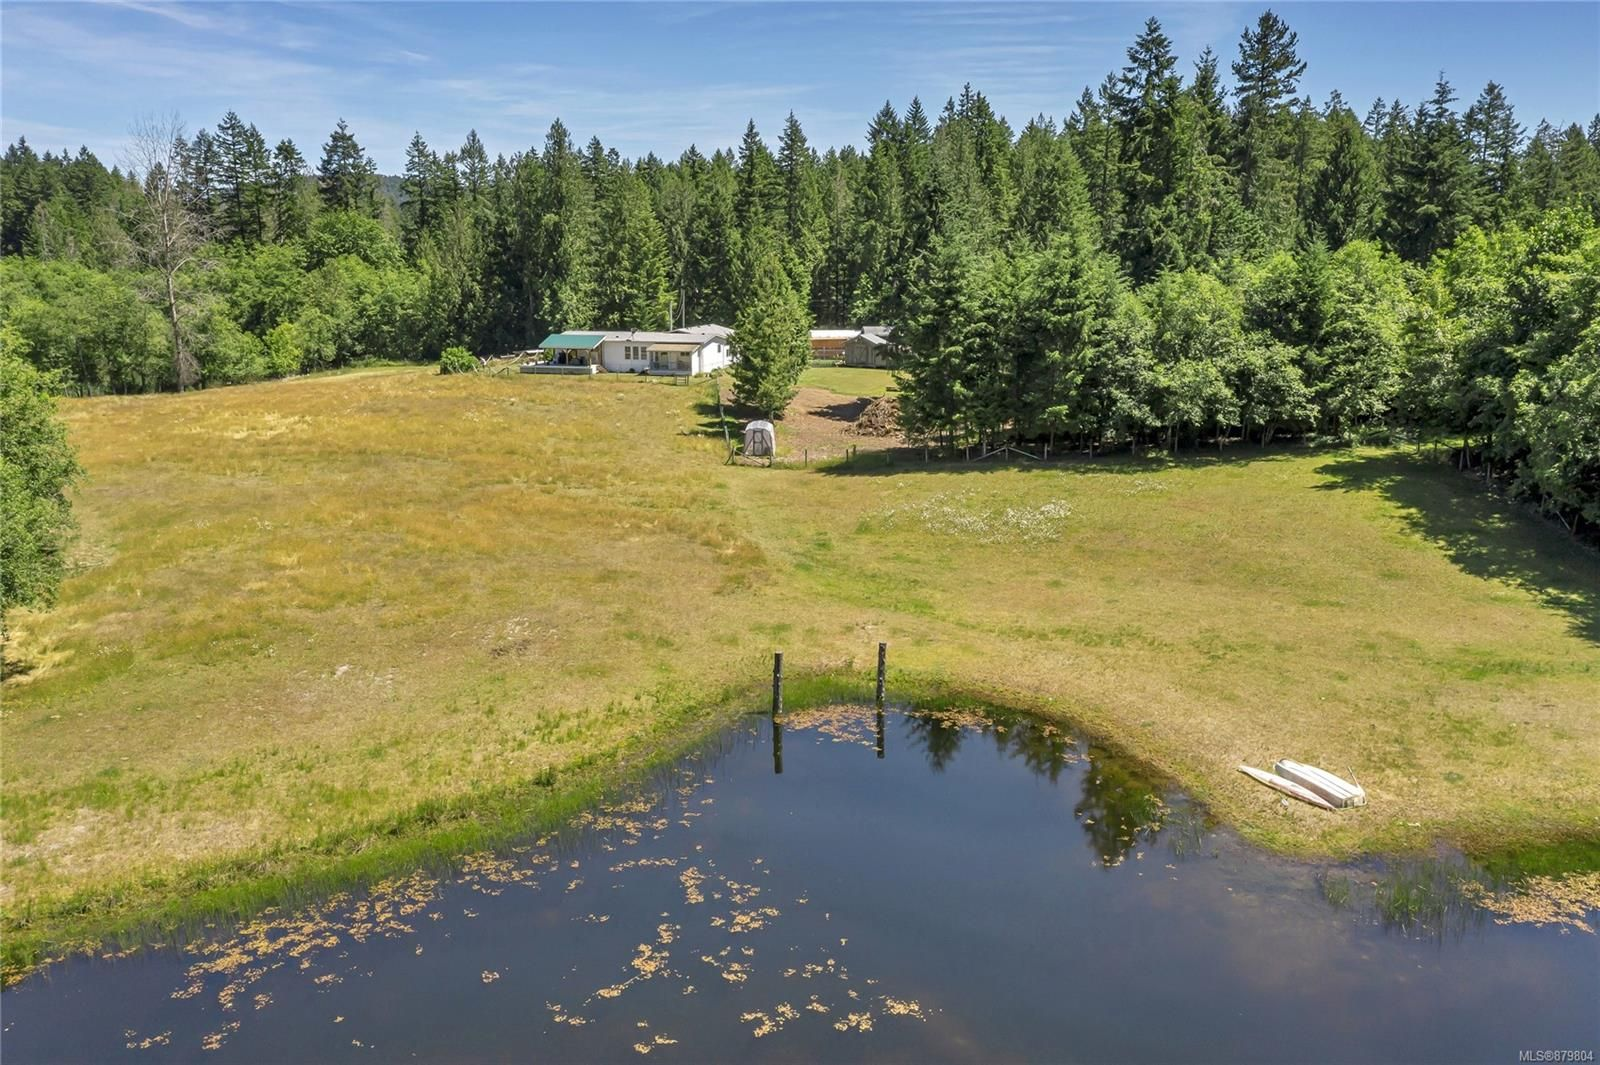 Photo 42: Photos: 3596 Riverside Rd in : ML Cobble Hill Manufactured Home for sale (Malahat & Area)  : MLS®# 879804